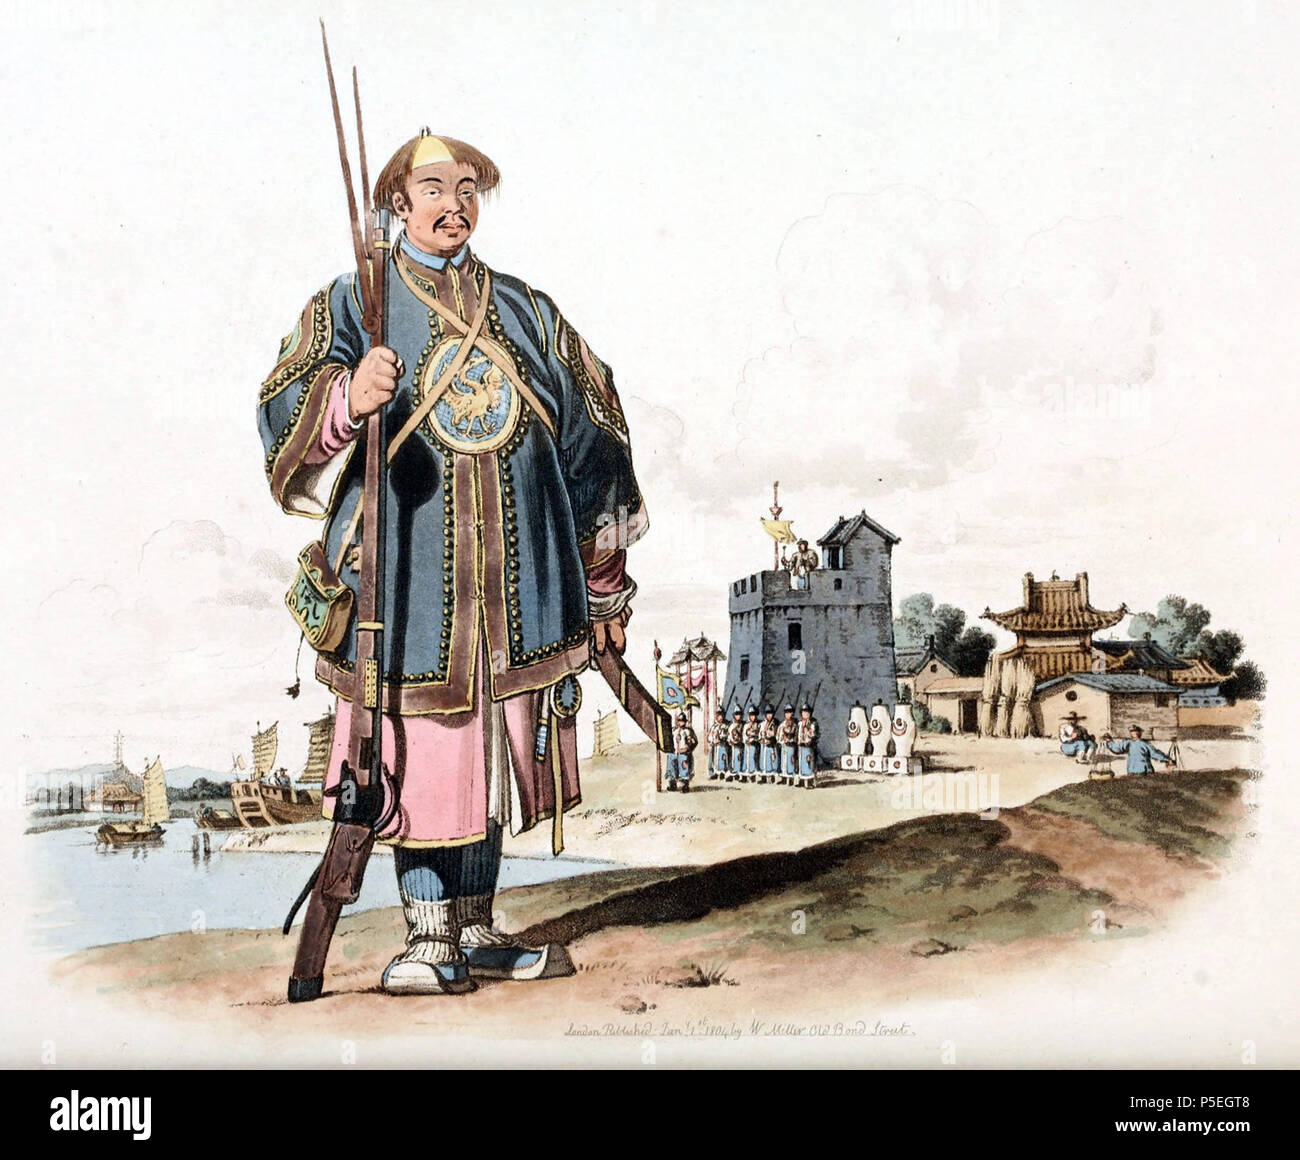 N/A. English: Drawing by William Alexander, draughtsman of the Macartney Embassy to China in 1793. A soldier armed with a matchlock gun. At his right side hangs his cartouch-box and on his left, his sword with the point forwards. In the background, there is a military post. A sentinel beats a gong to call out the guard, who are ready to salute a man of rank. Alexander noted an outdated design of the Chinese firearms compared to the European muskets. Image taken from The Costume of China, illustrated in forty-eight coloured engravings, published in London in 1805. circa 1800.   William Alexande Stock Photo